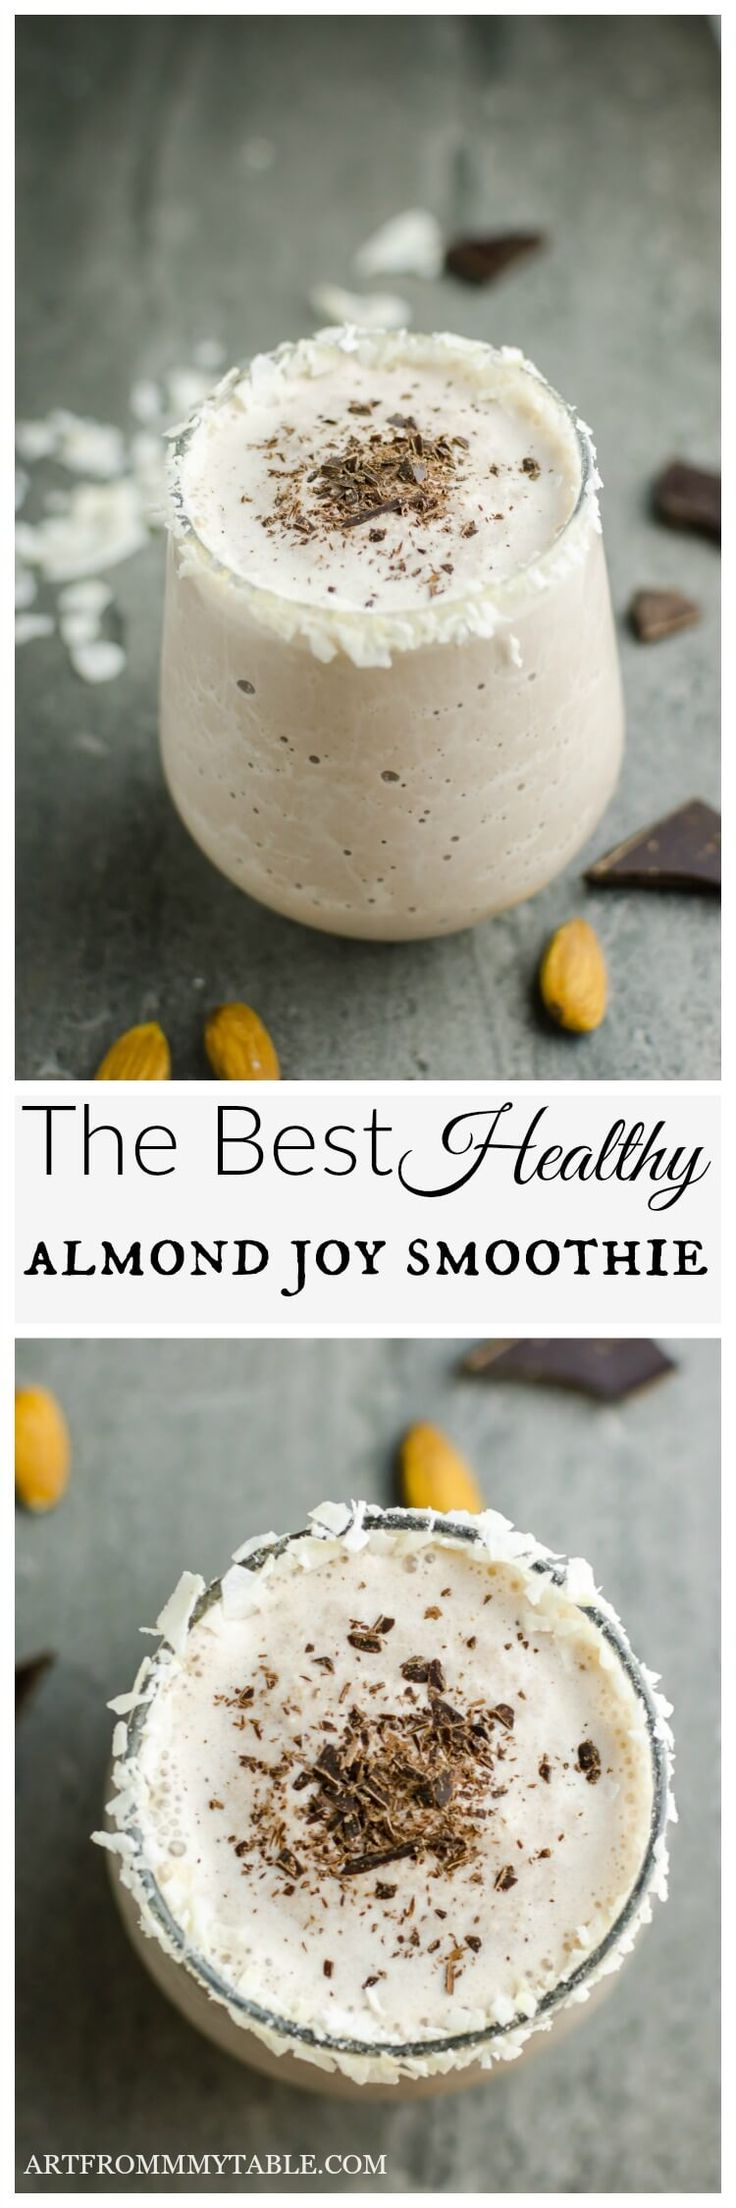 Dark chocolate, almonds and coconut with a punch of protein ~ this healthy almond milk smoothie is just what you need to satisfy your sweet craving and fuel your body. What could be better? Print The Best Almond Joy Smoothie Dark chocolate, almonds and c